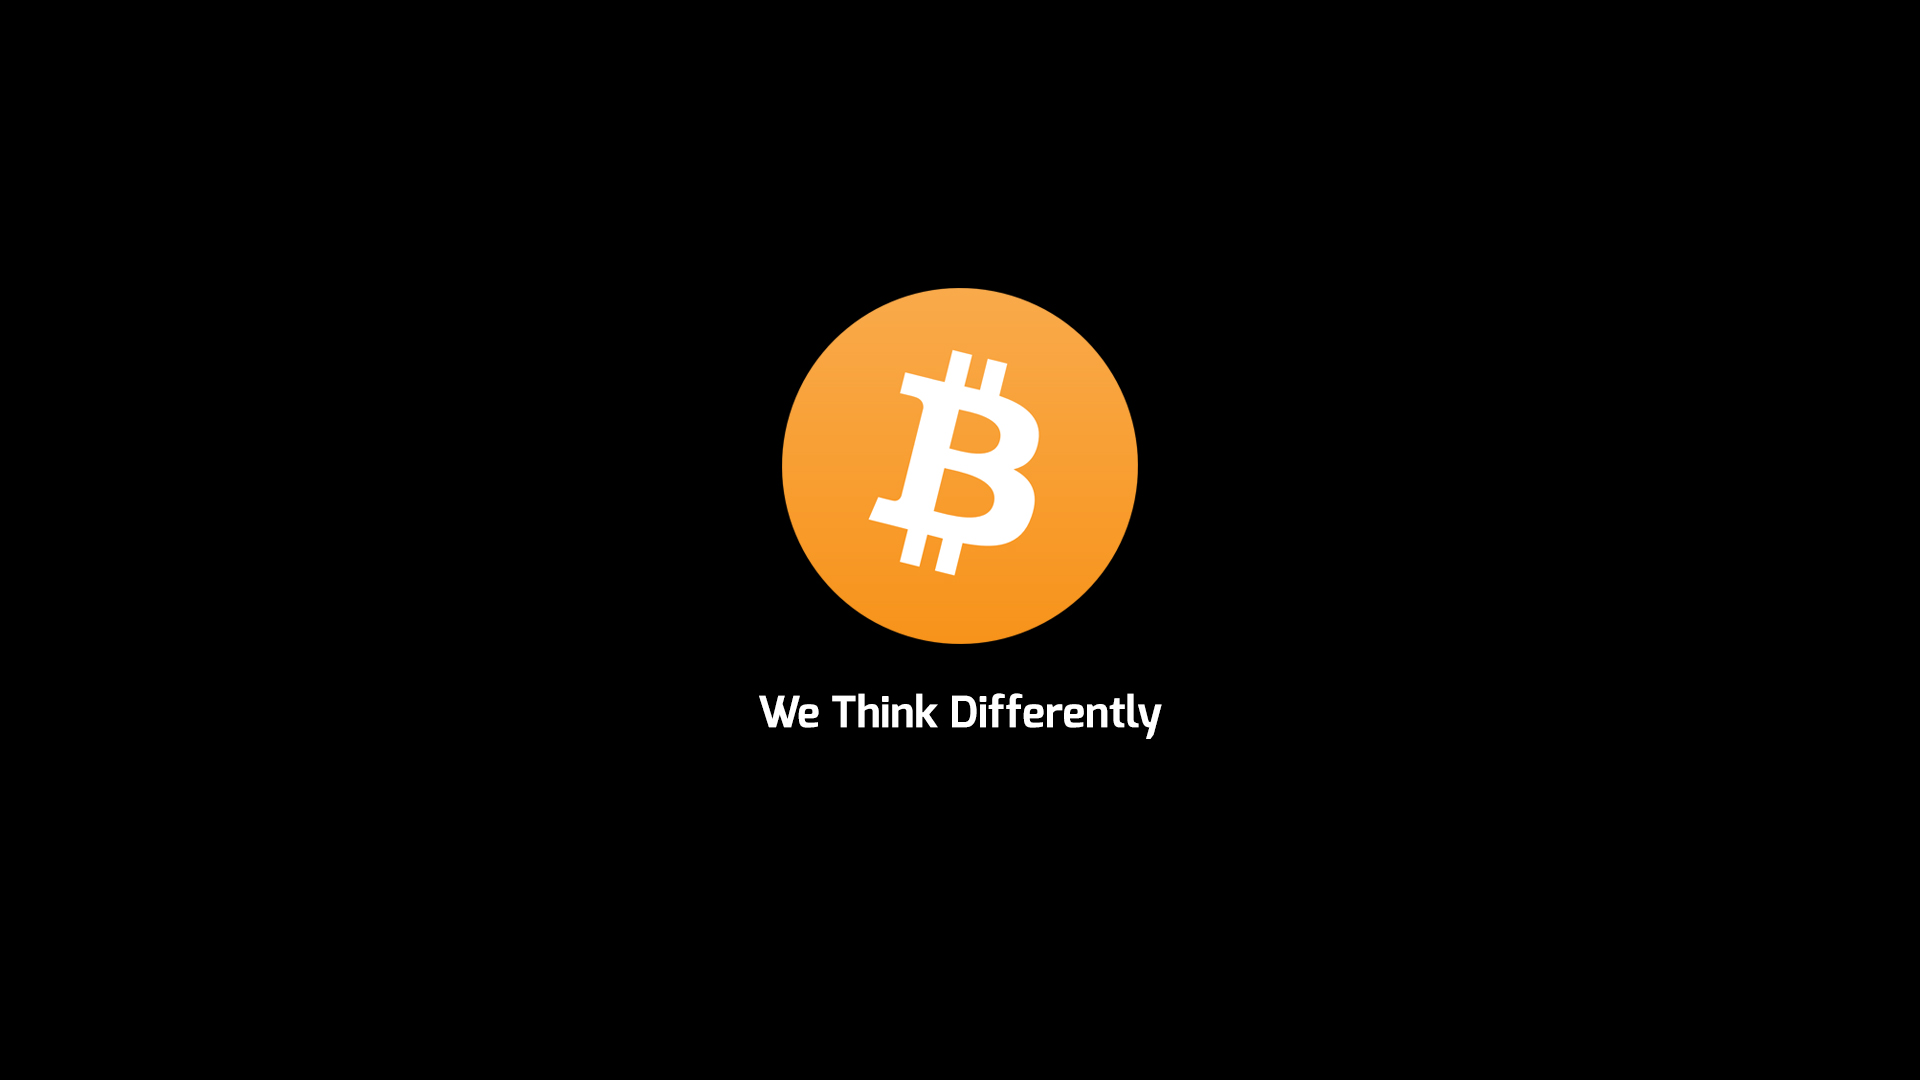 We Think Differently - Bitcoin by DrasticRaven